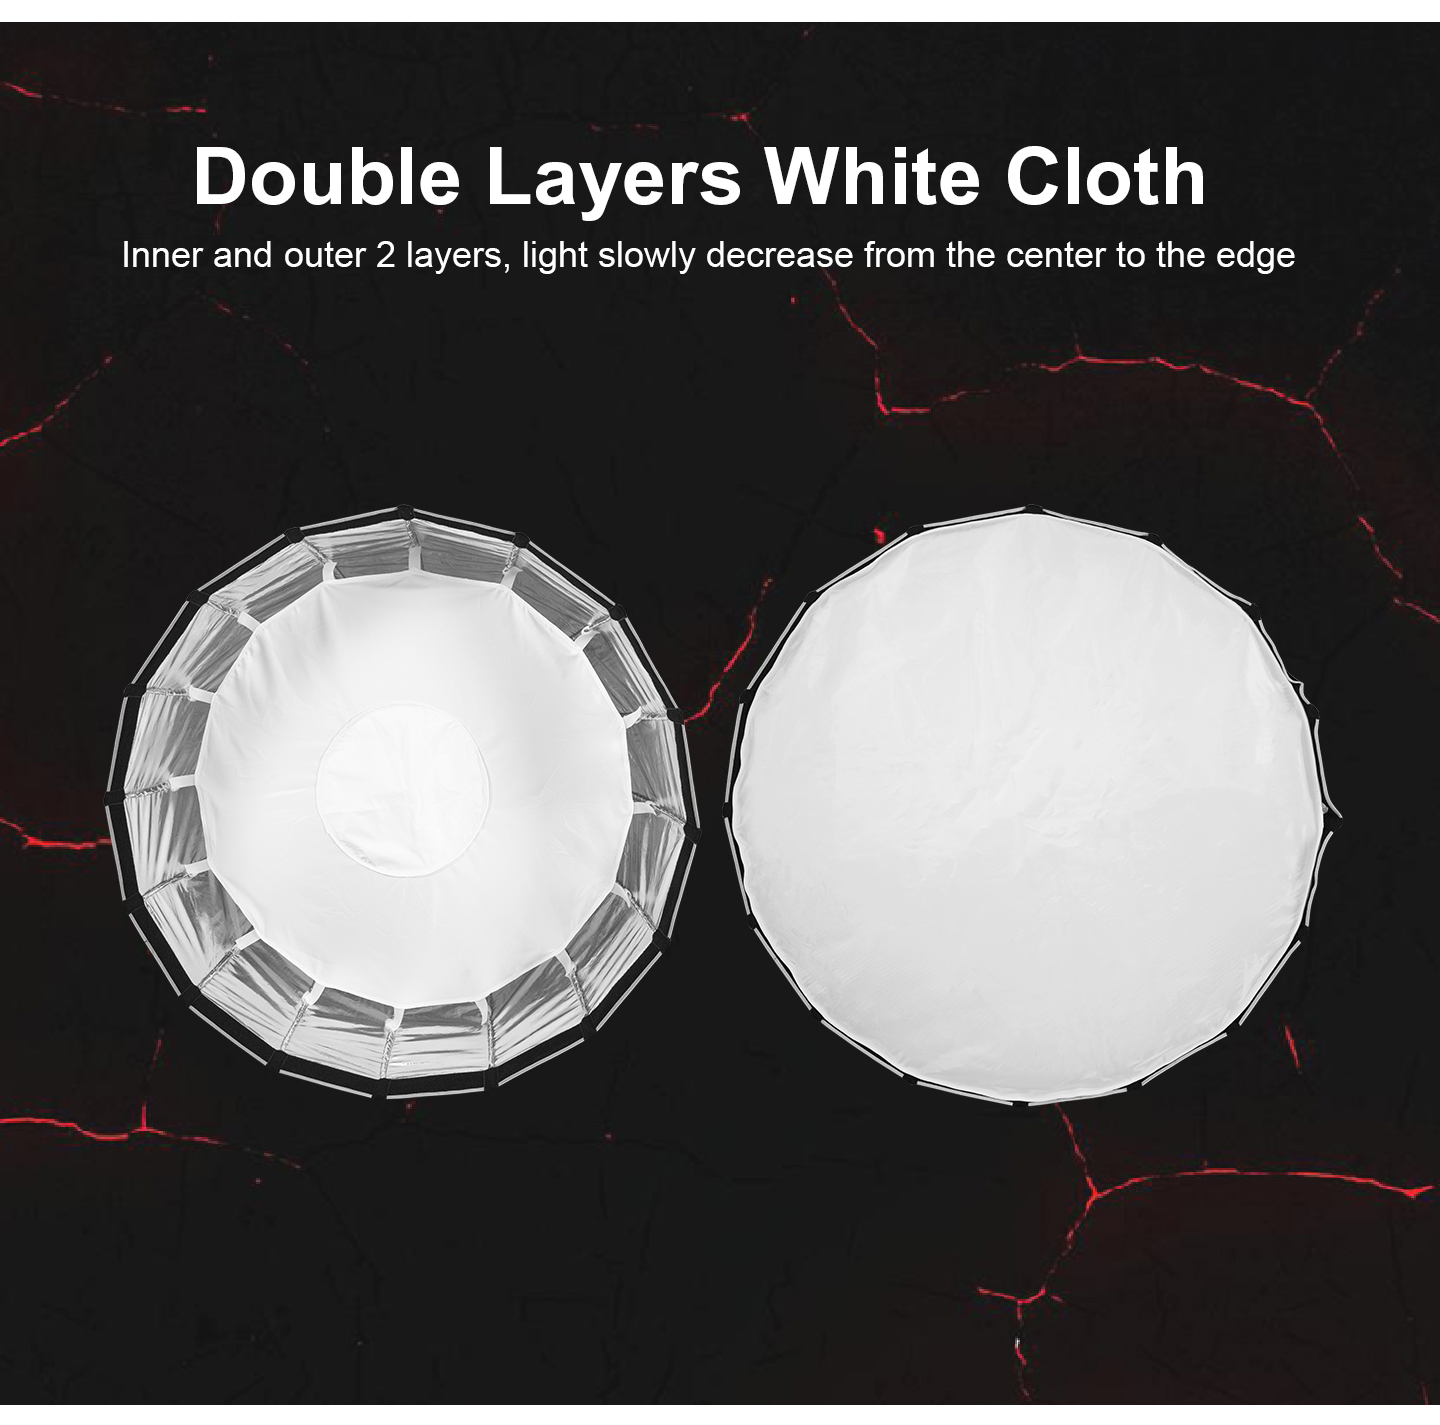 Double Layers White Cloth